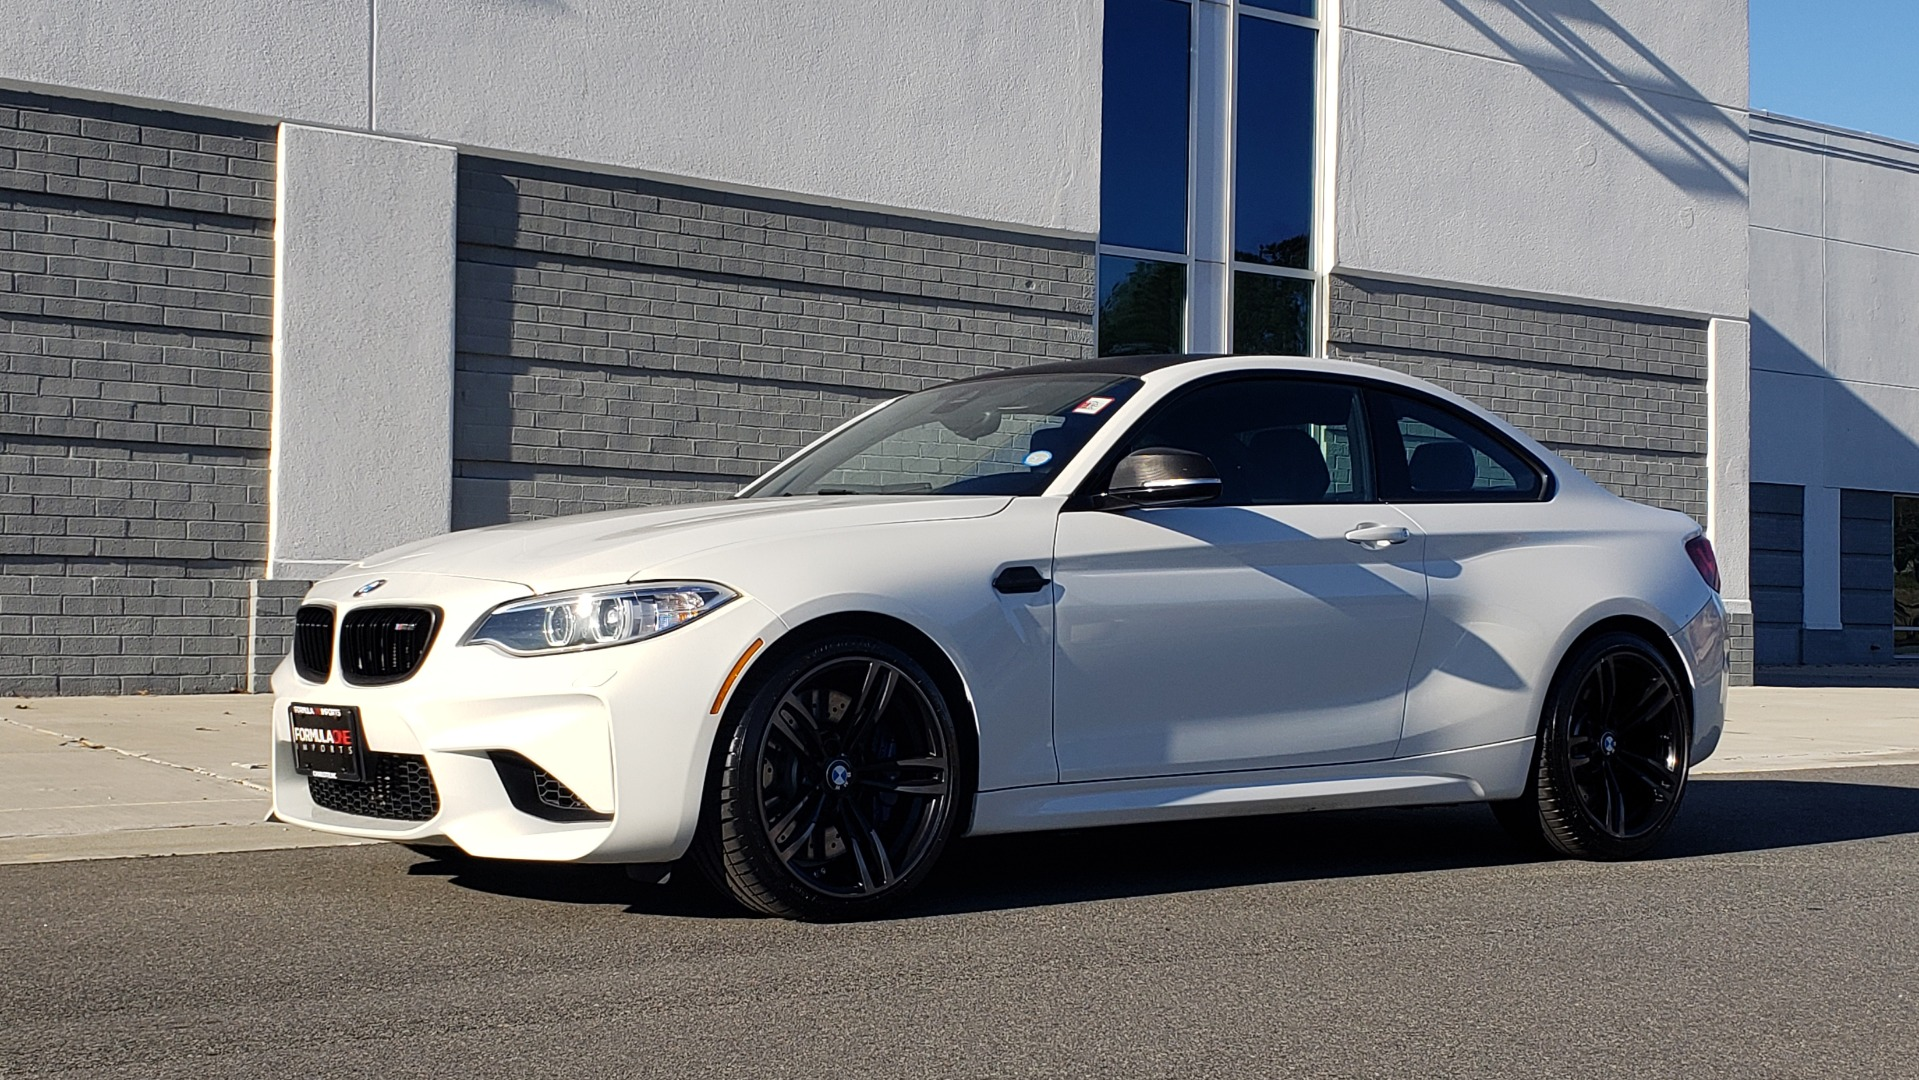 Used 2017 BMW M2 COUPE / MANUAL / EXEC PKG / NAV / WIFI / PDC / REARVIEW for sale Sold at Formula Imports in Charlotte NC 28227 2